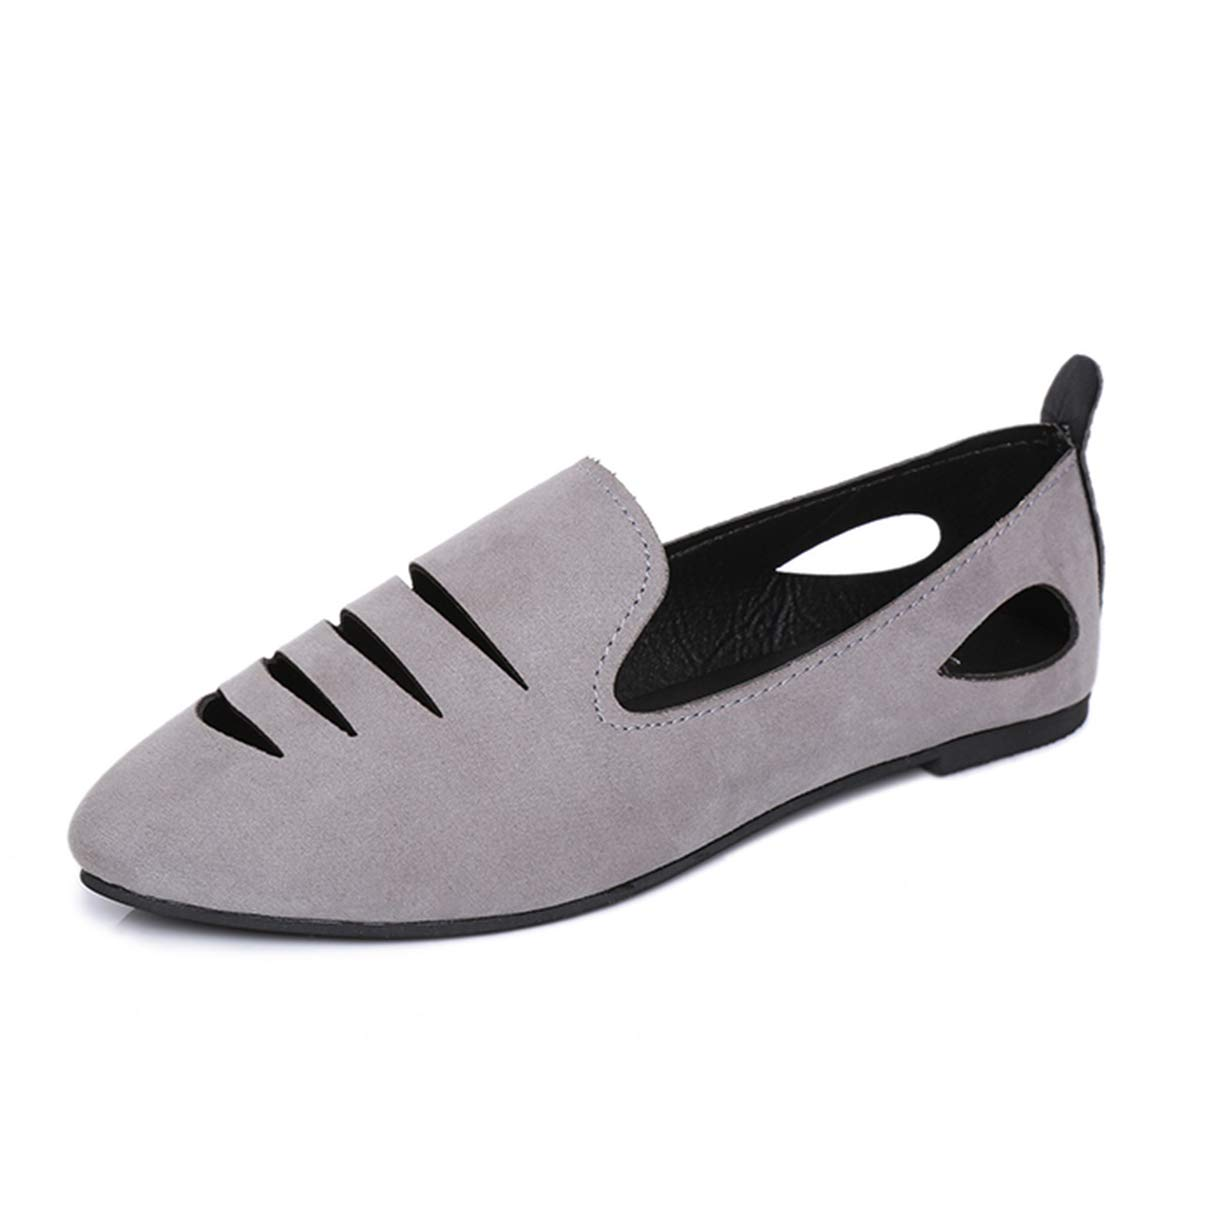 3 Colors Pointed Toe Cut Outs Loafers Ballet Slip On Shoes Women Solid Flats